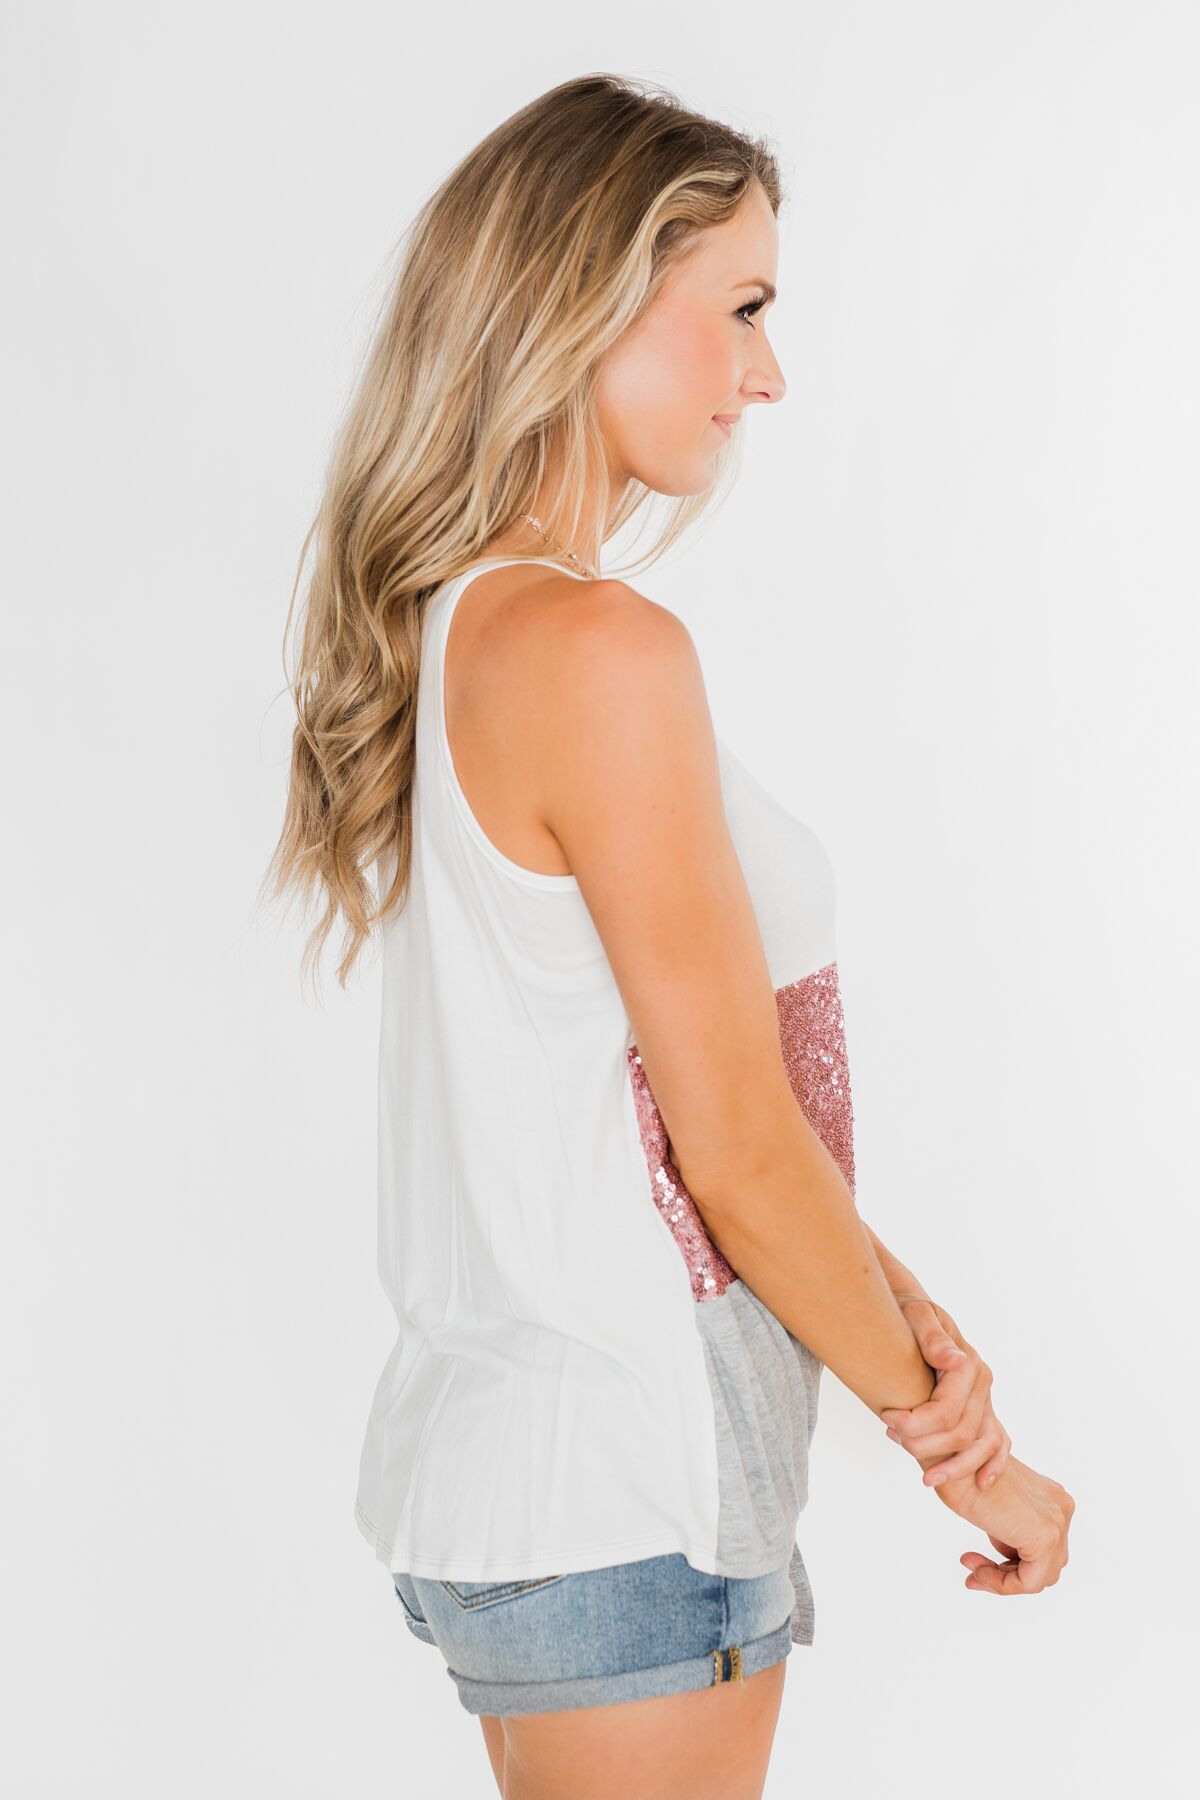 Full Of Sparkle Front Knot Halter Top- Ivory, Pink, & Gray